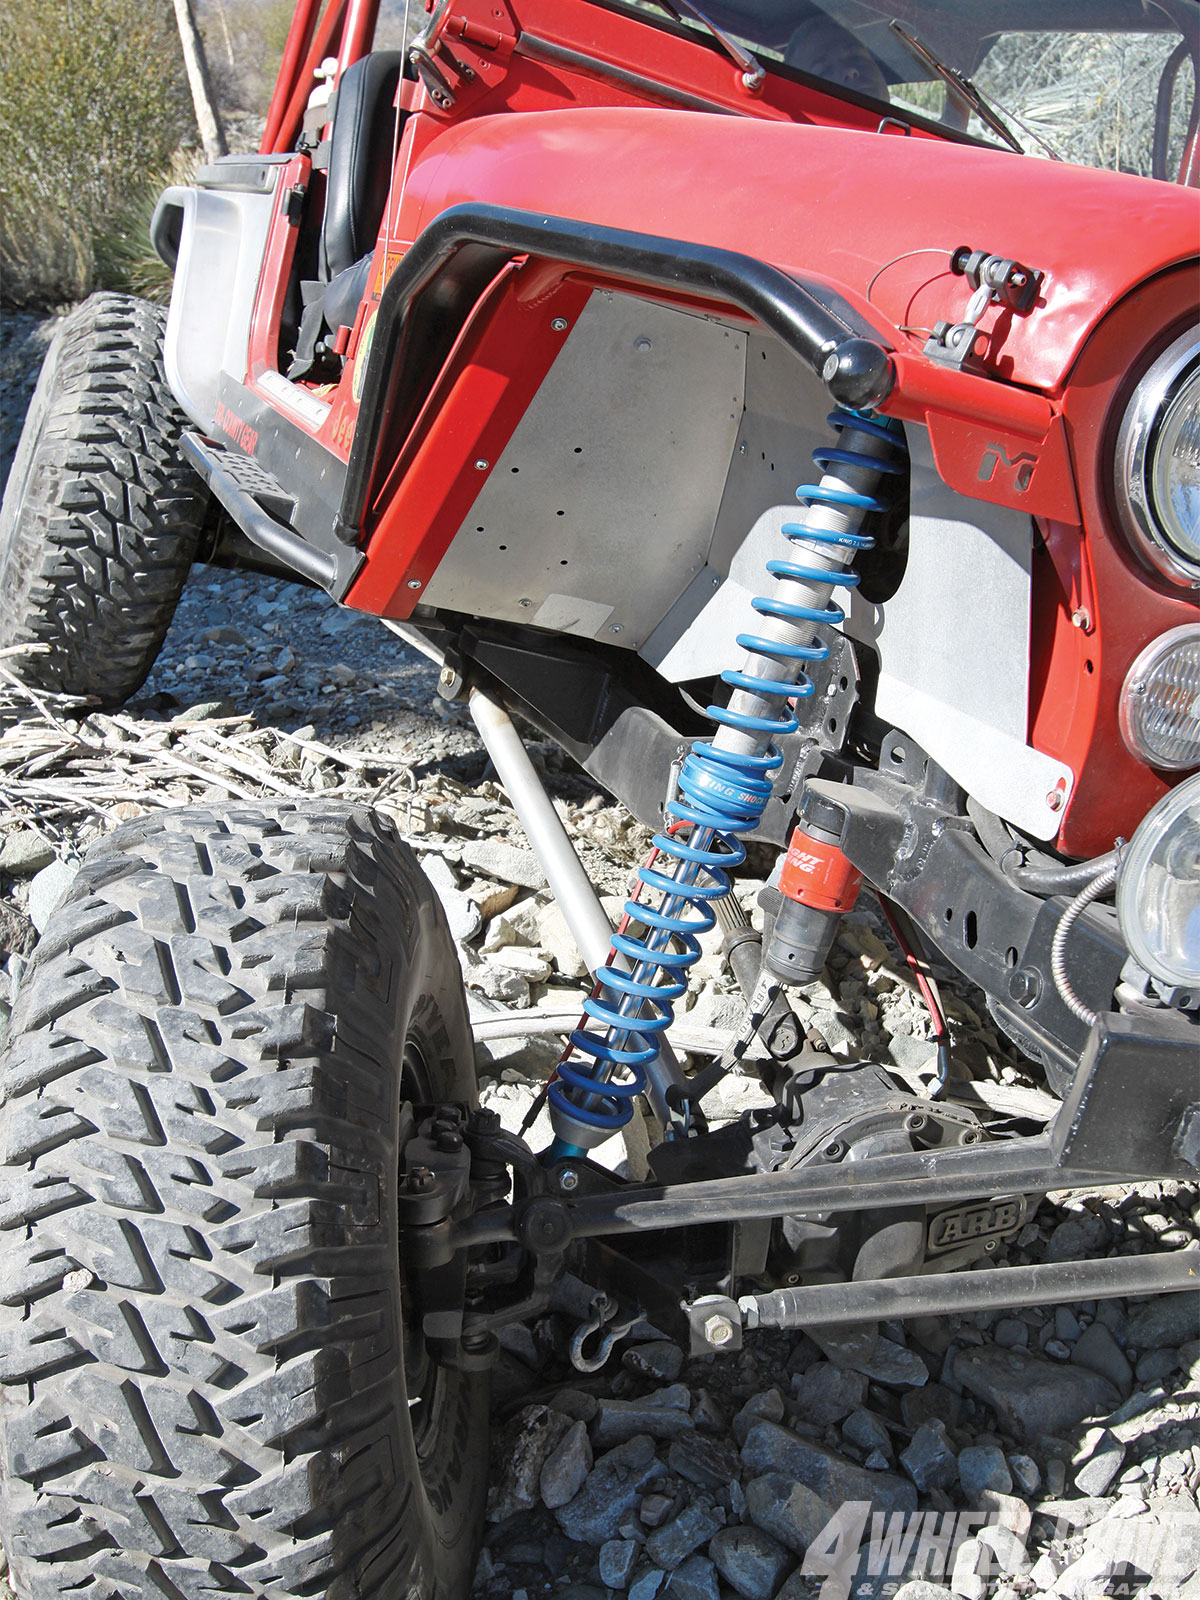 1306 4wd 18+1986 jeep cj 7+king coilover